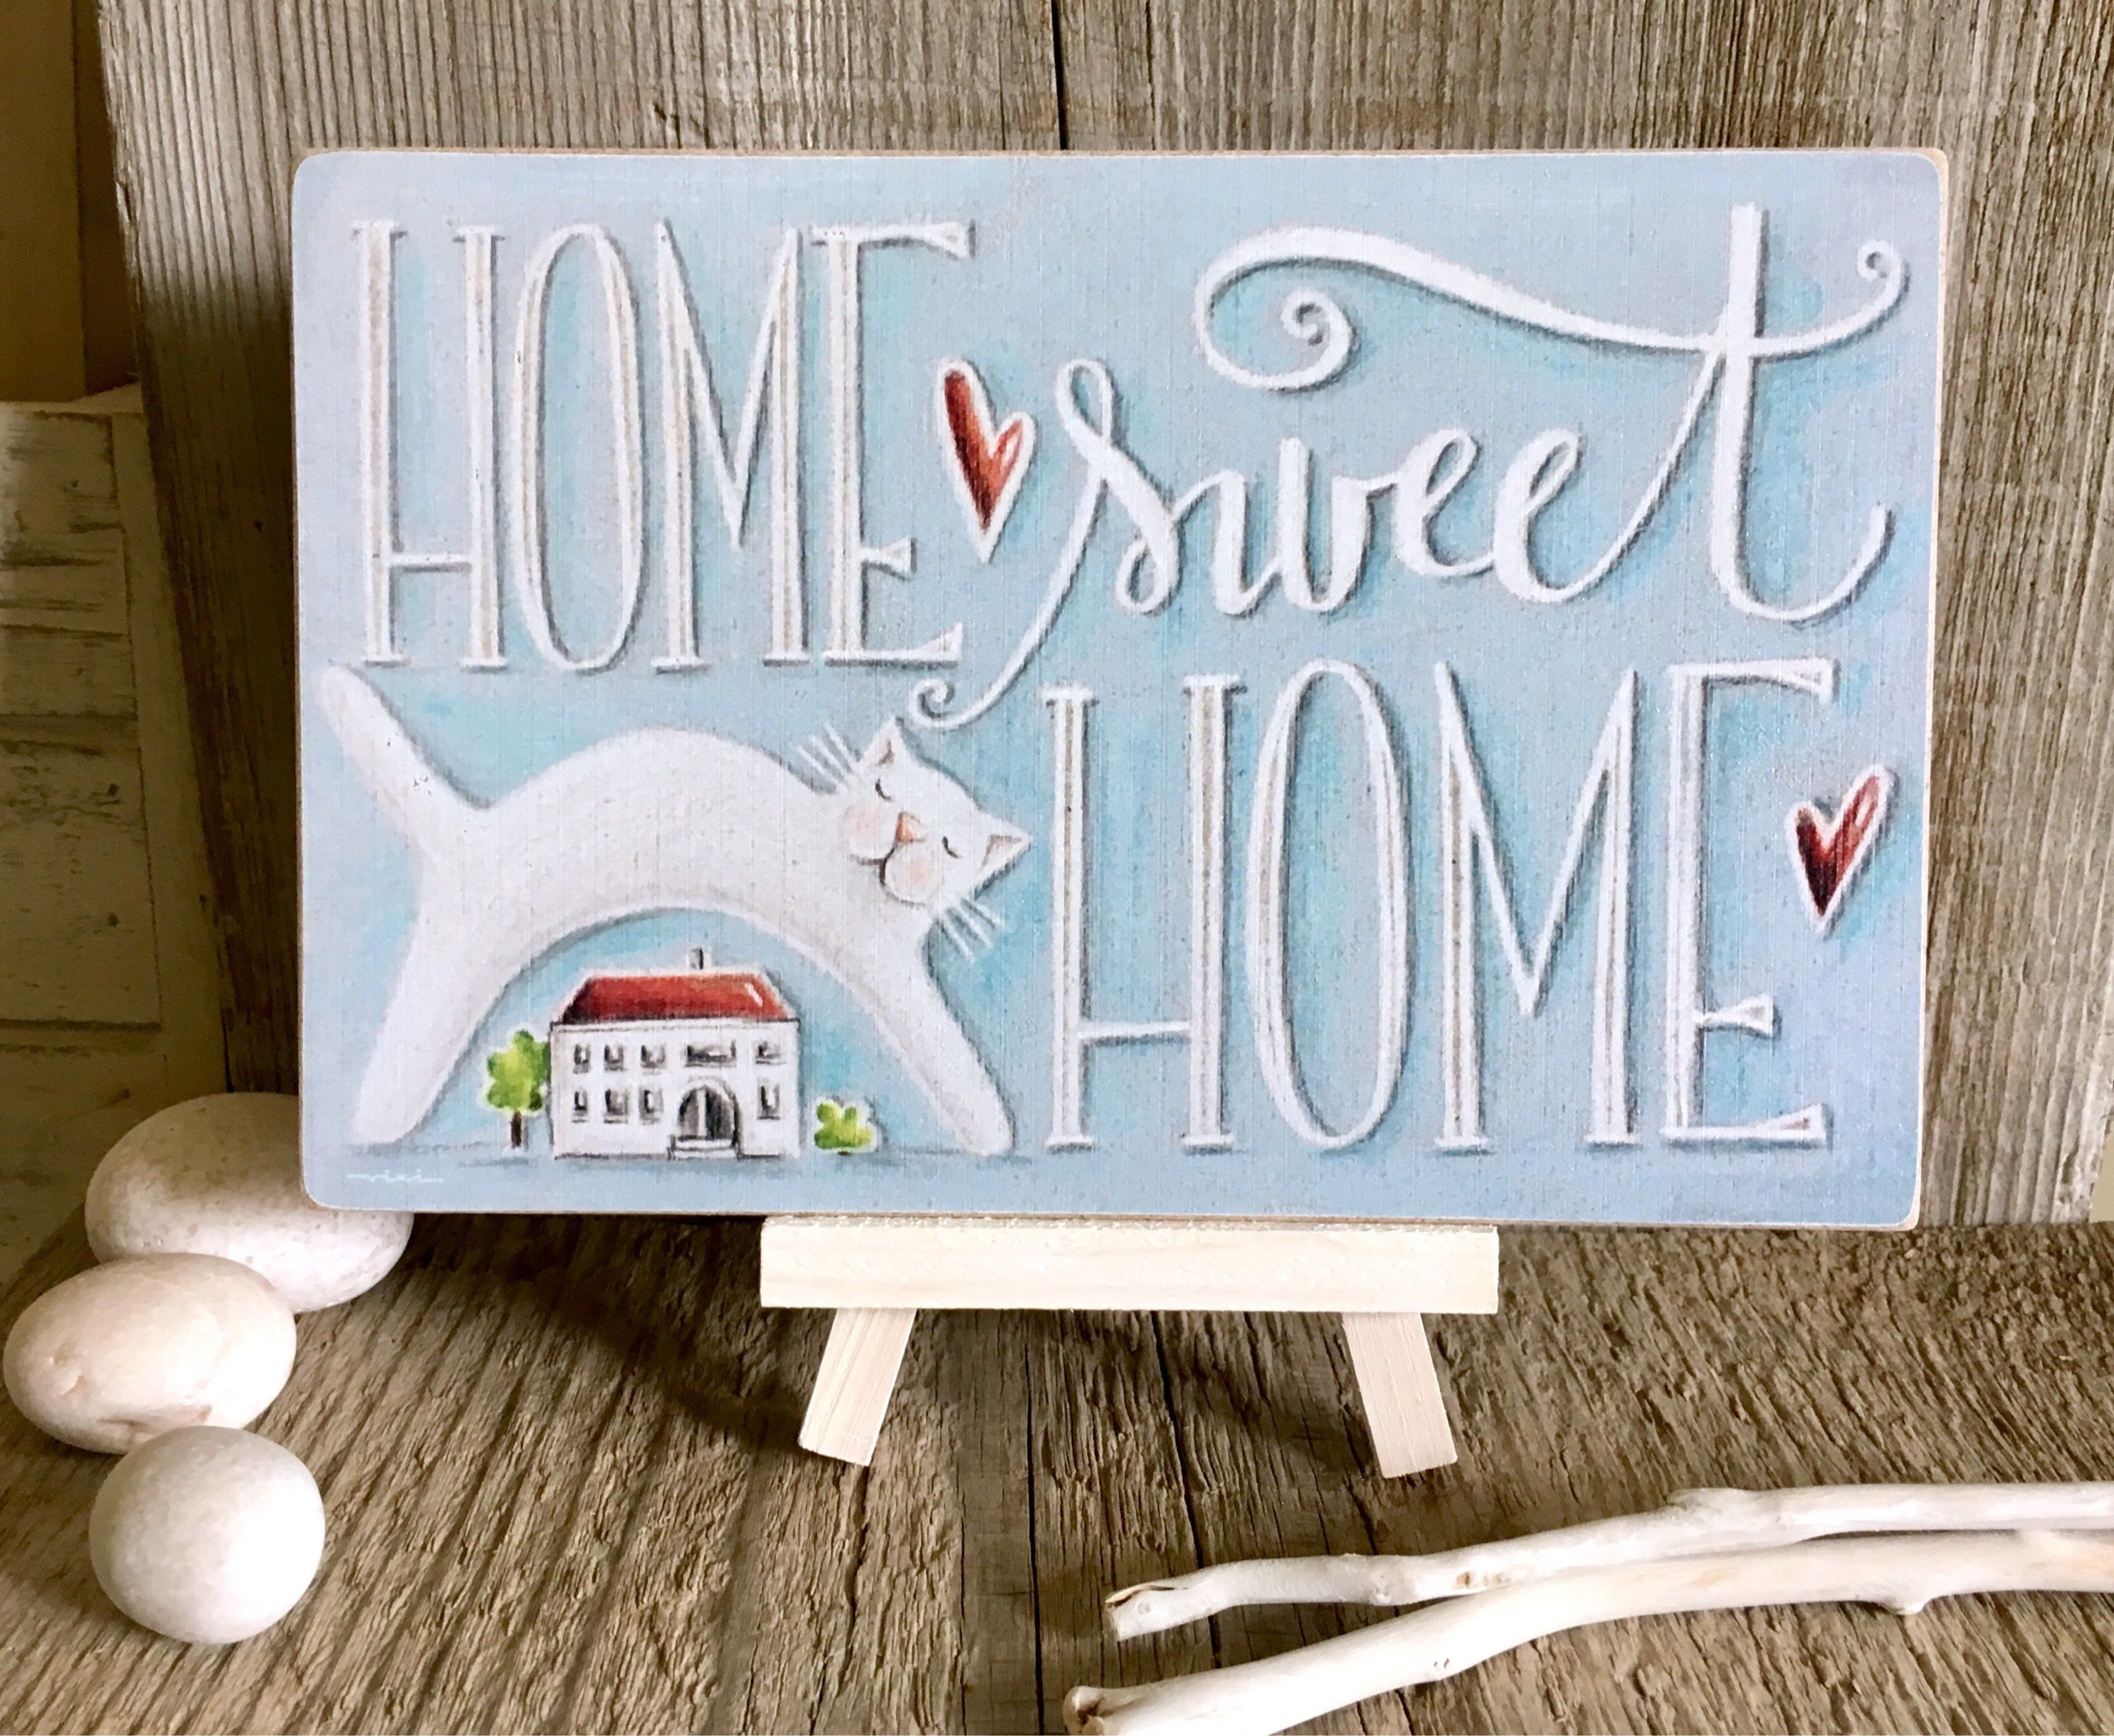 House Warming Gift Home Sweet Home Rustic Home Decor Home Decor Wall Art New Home Gift Cat Wall Hanging Wall Sign Wood Print Home